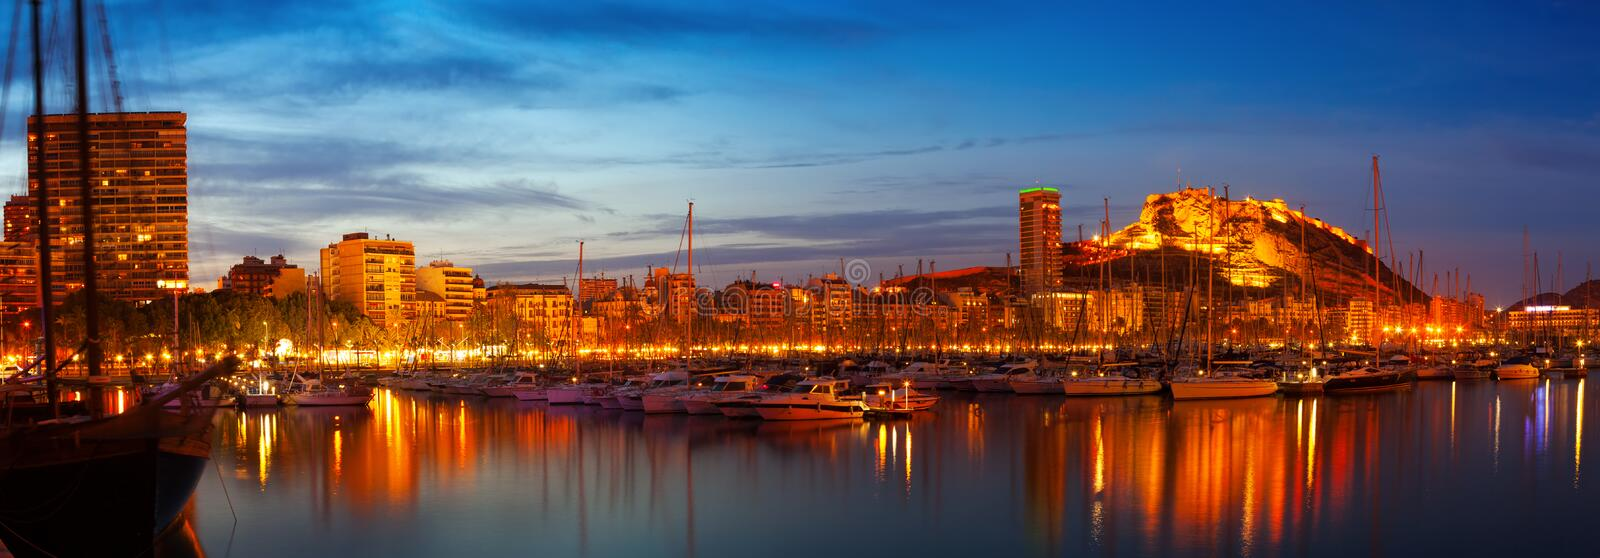 Port in night. Alicante, Spain royalty free stock photography